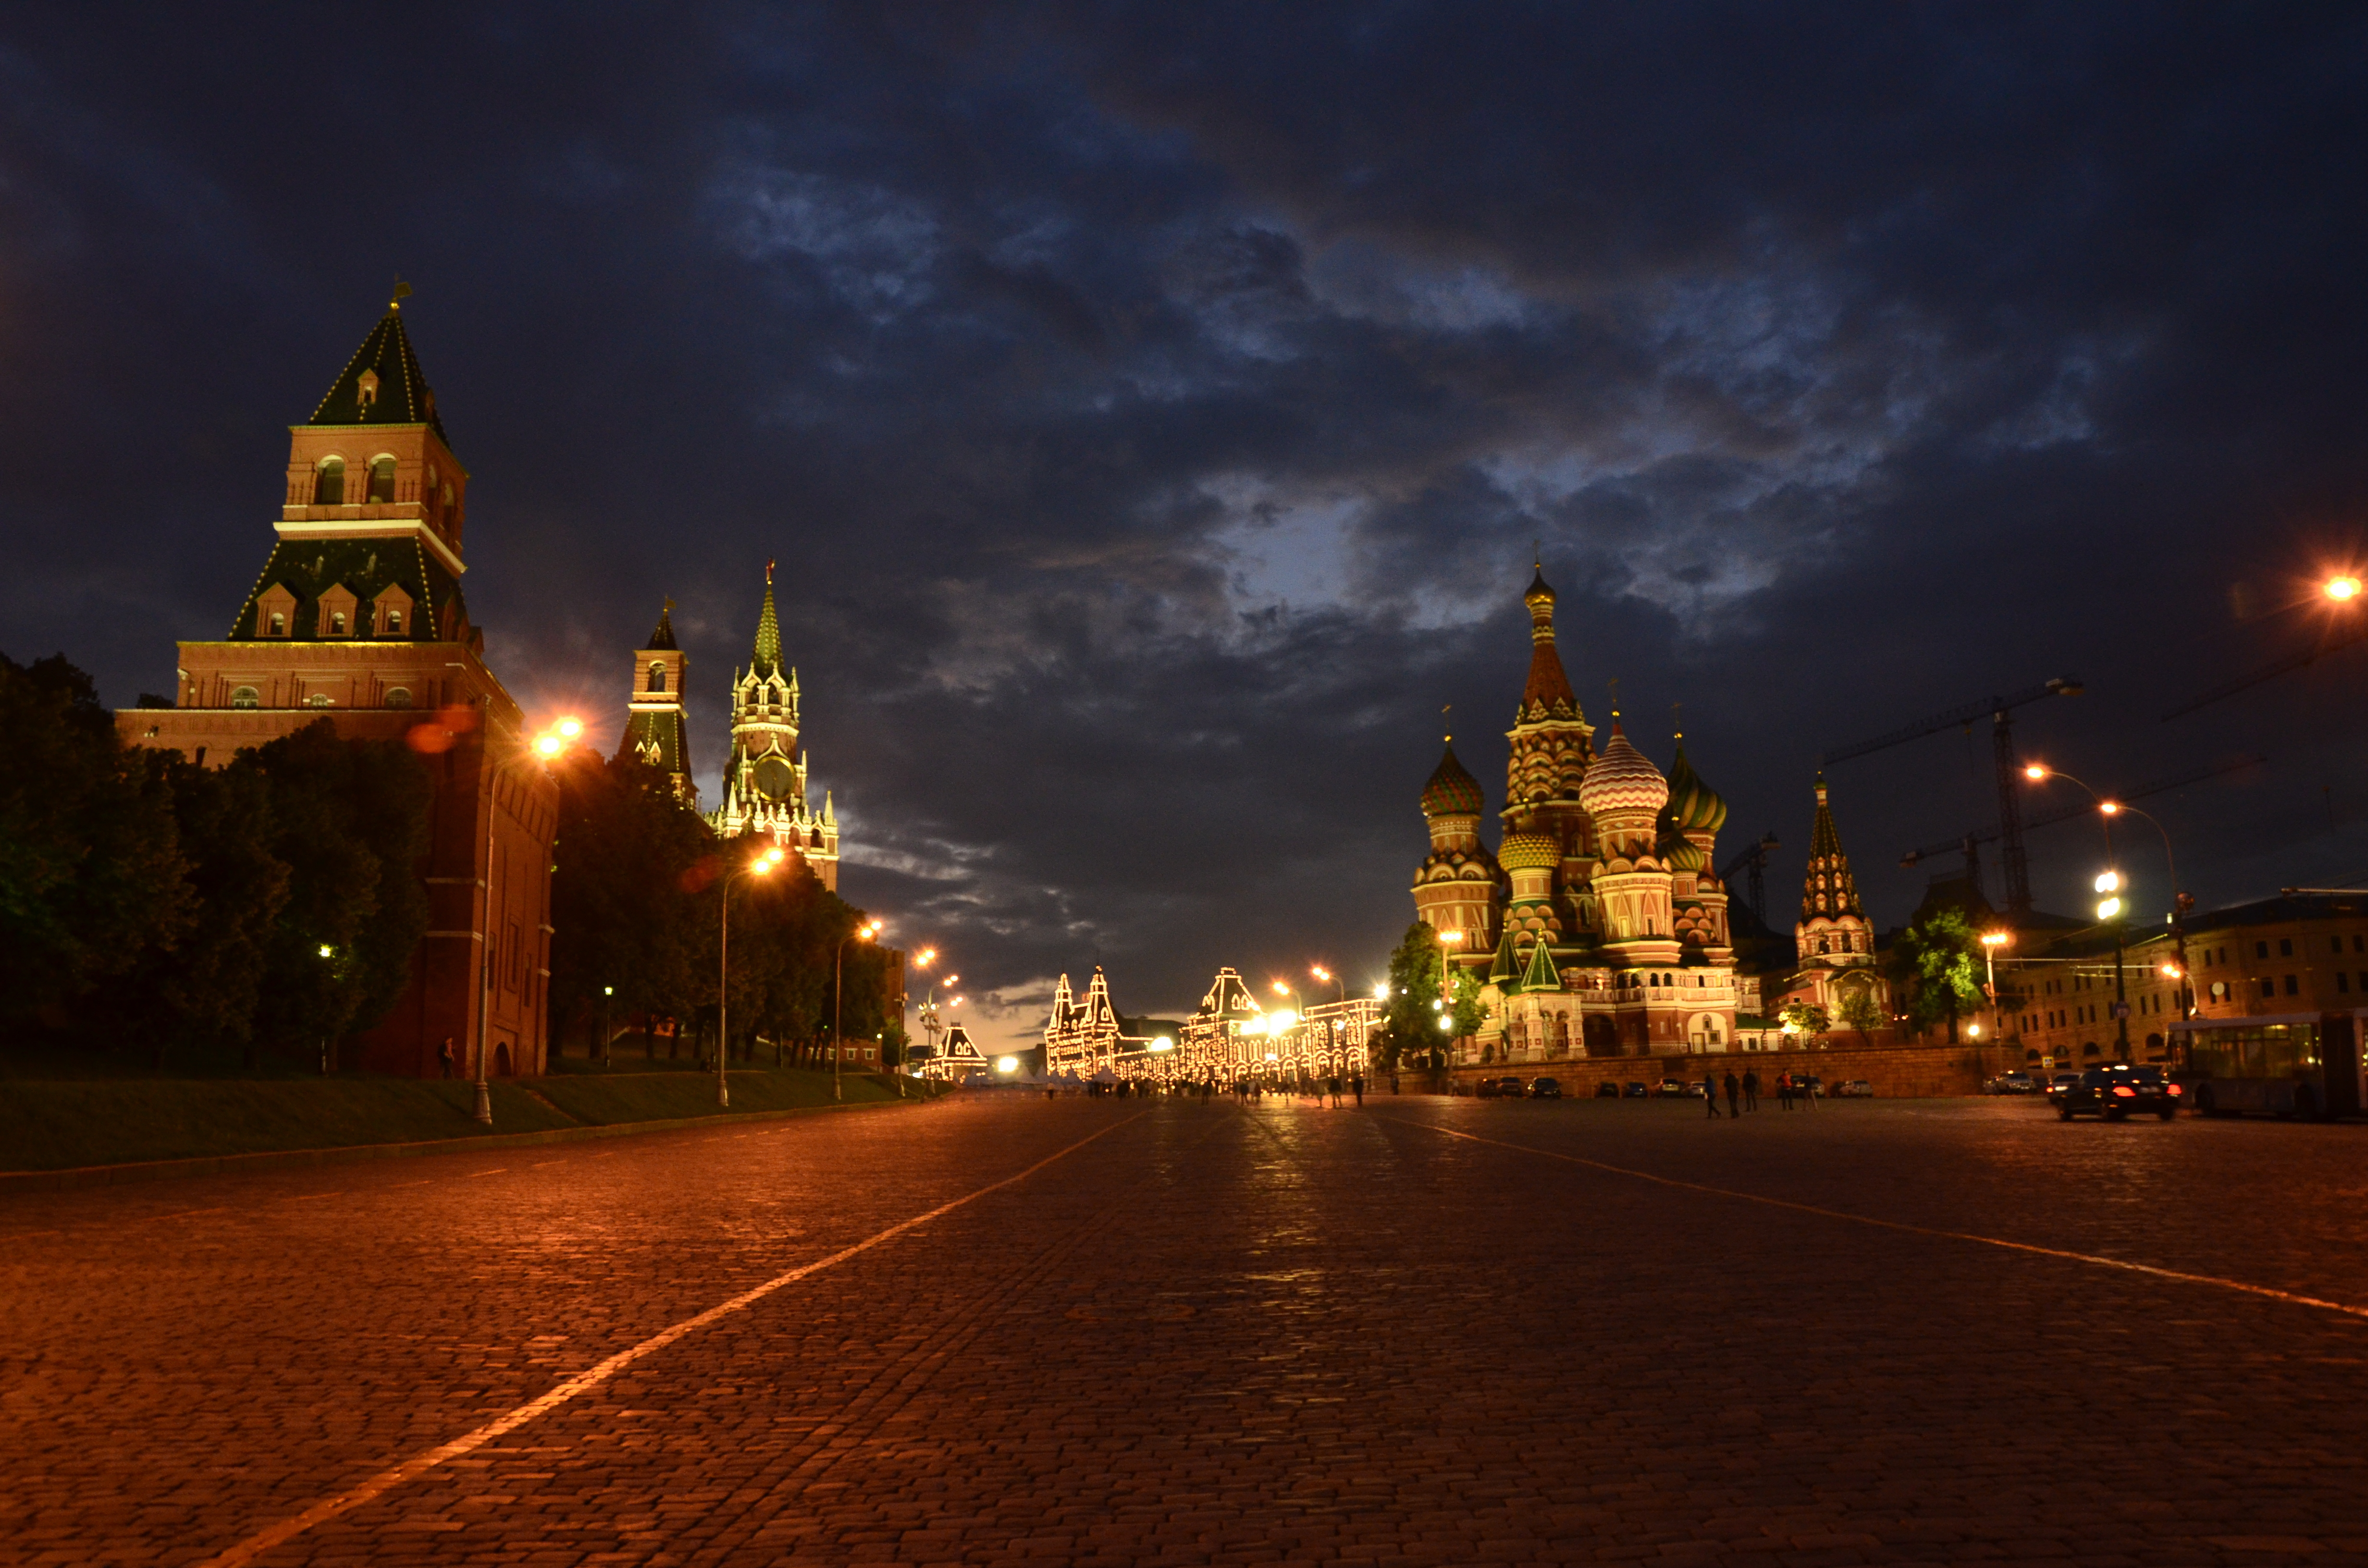 moscow wallpapers high resolution - photo #48